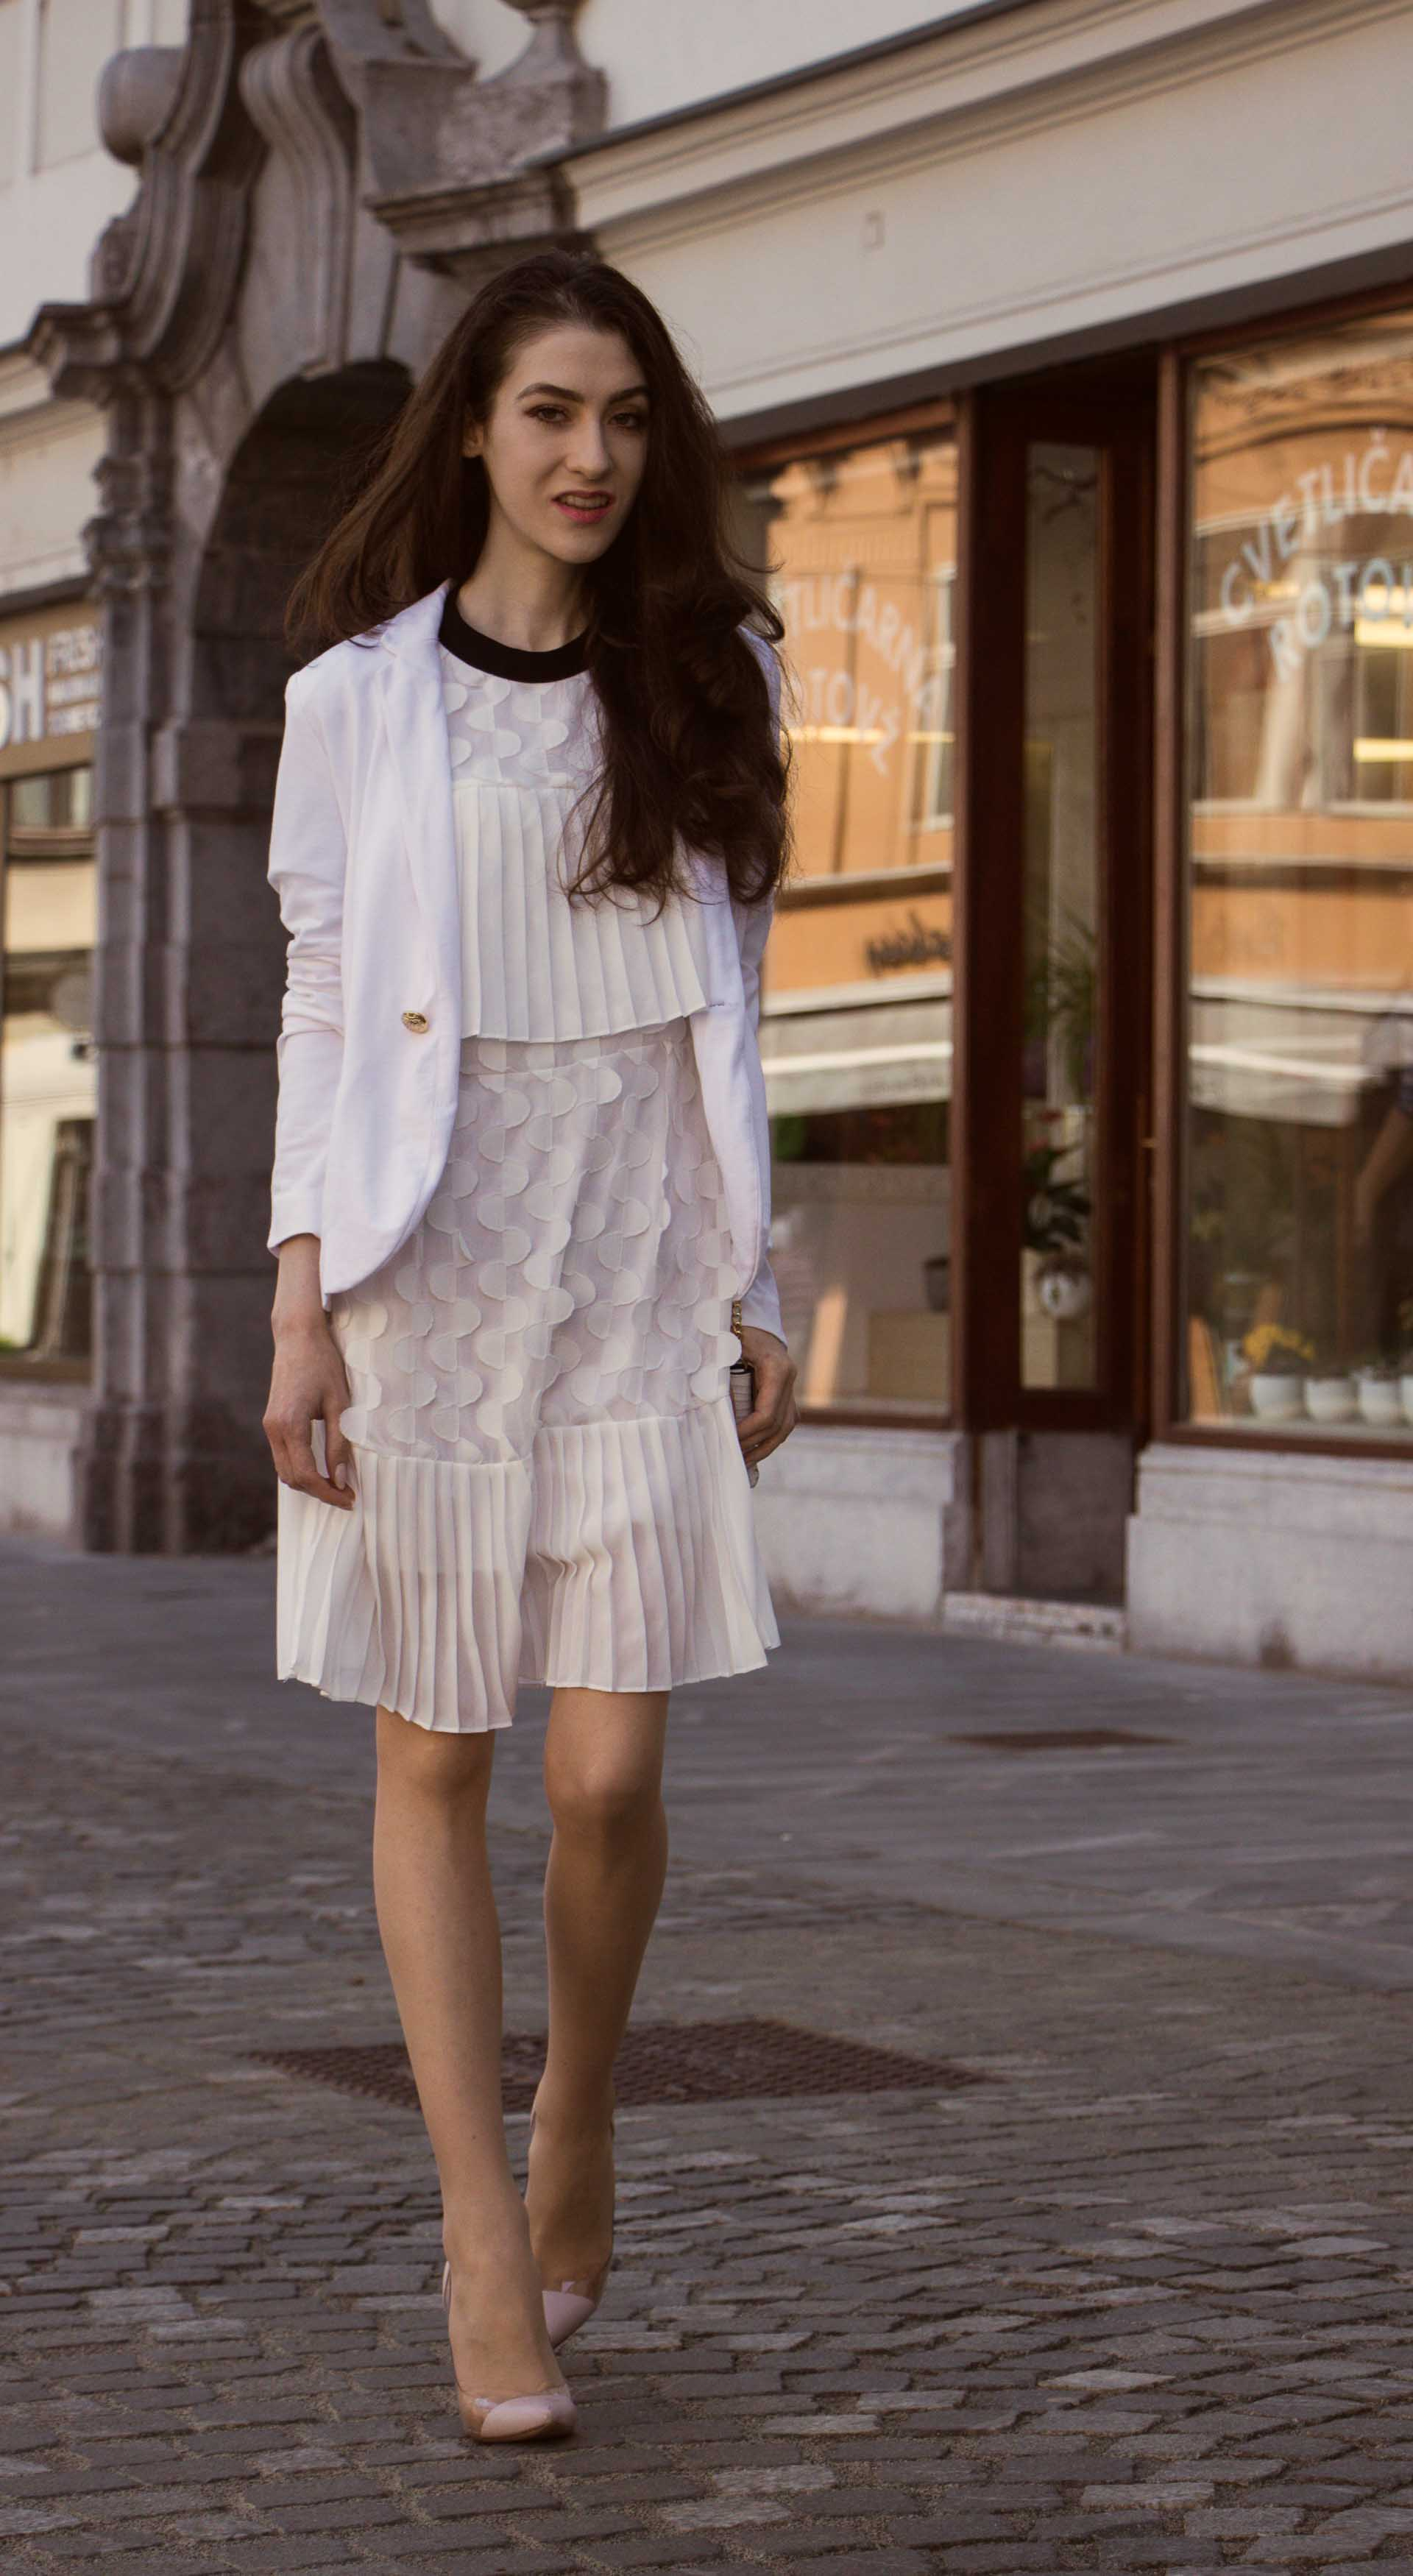 Veronika Lipar Fashion Blogger of Brunette from Wall Street wearing Storets little white dress, white tailored blazer, Gianvito Rossi pumps for wedding at city hall